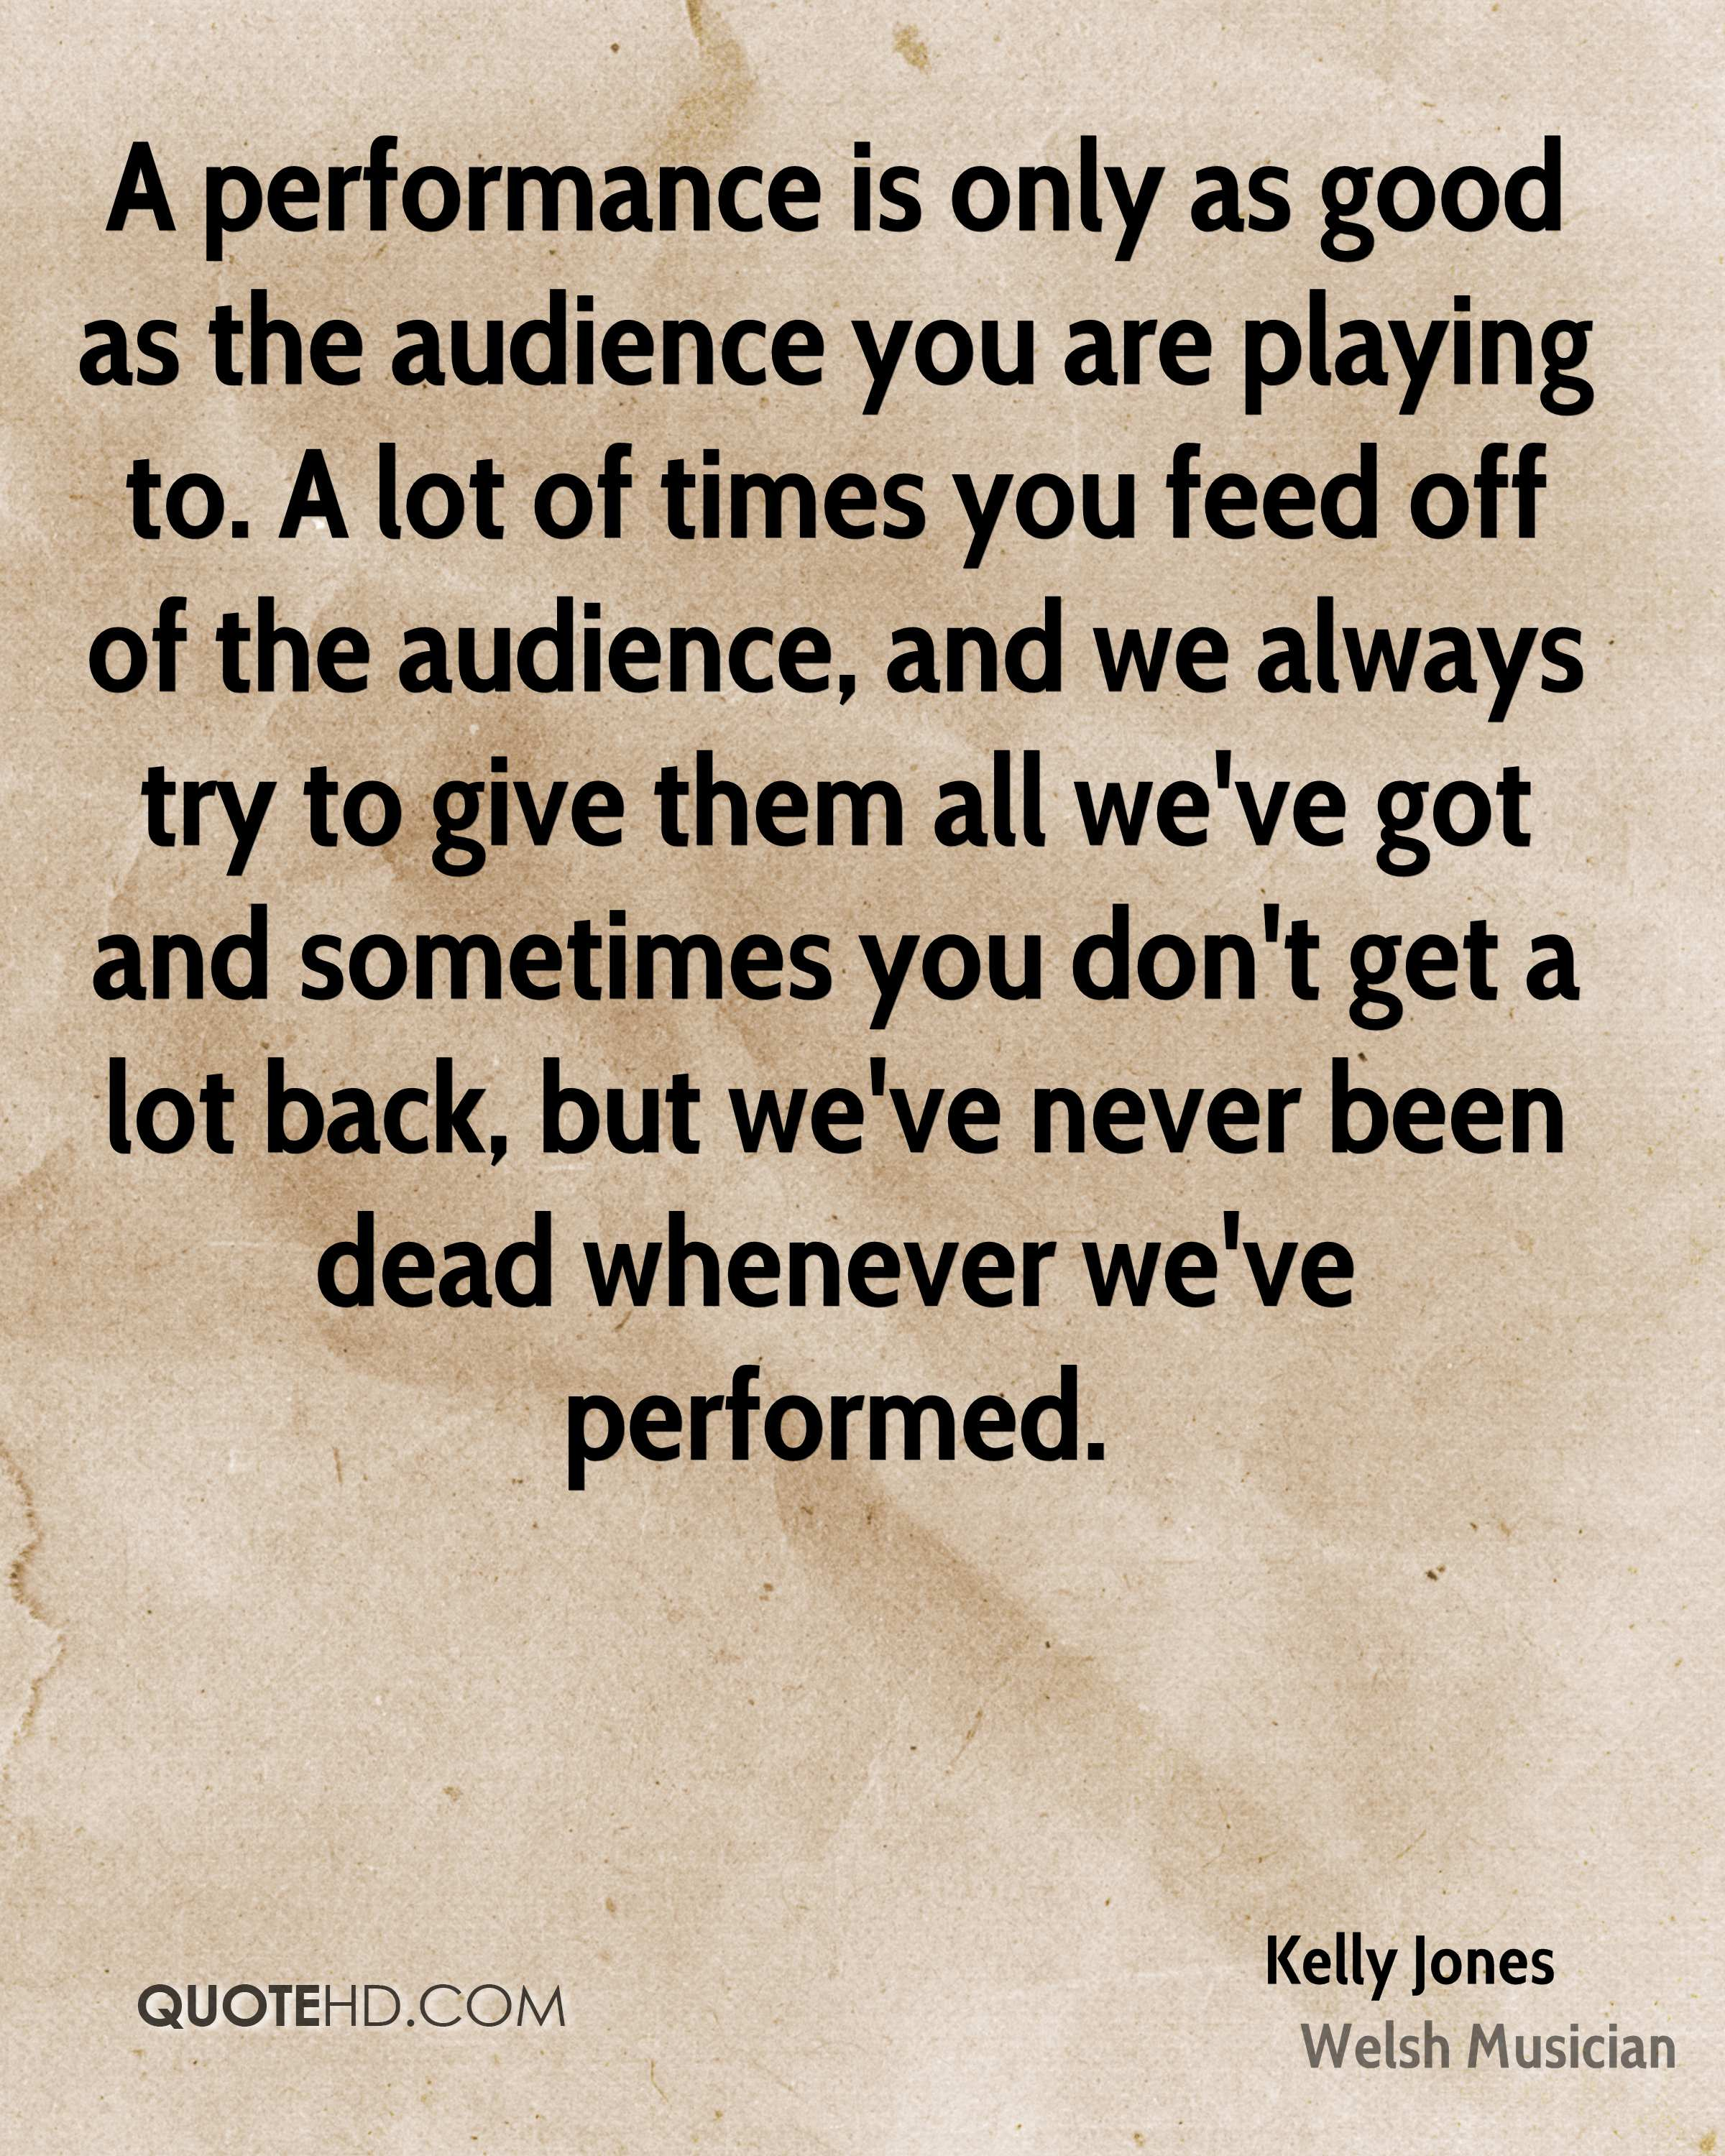 A performance is only as good as the audience you are playing to. A lot of times you feed off of the audience, and we always try to give them all we've got and sometimes you don't get a lot back, but we've never been dead whenever we've performed.